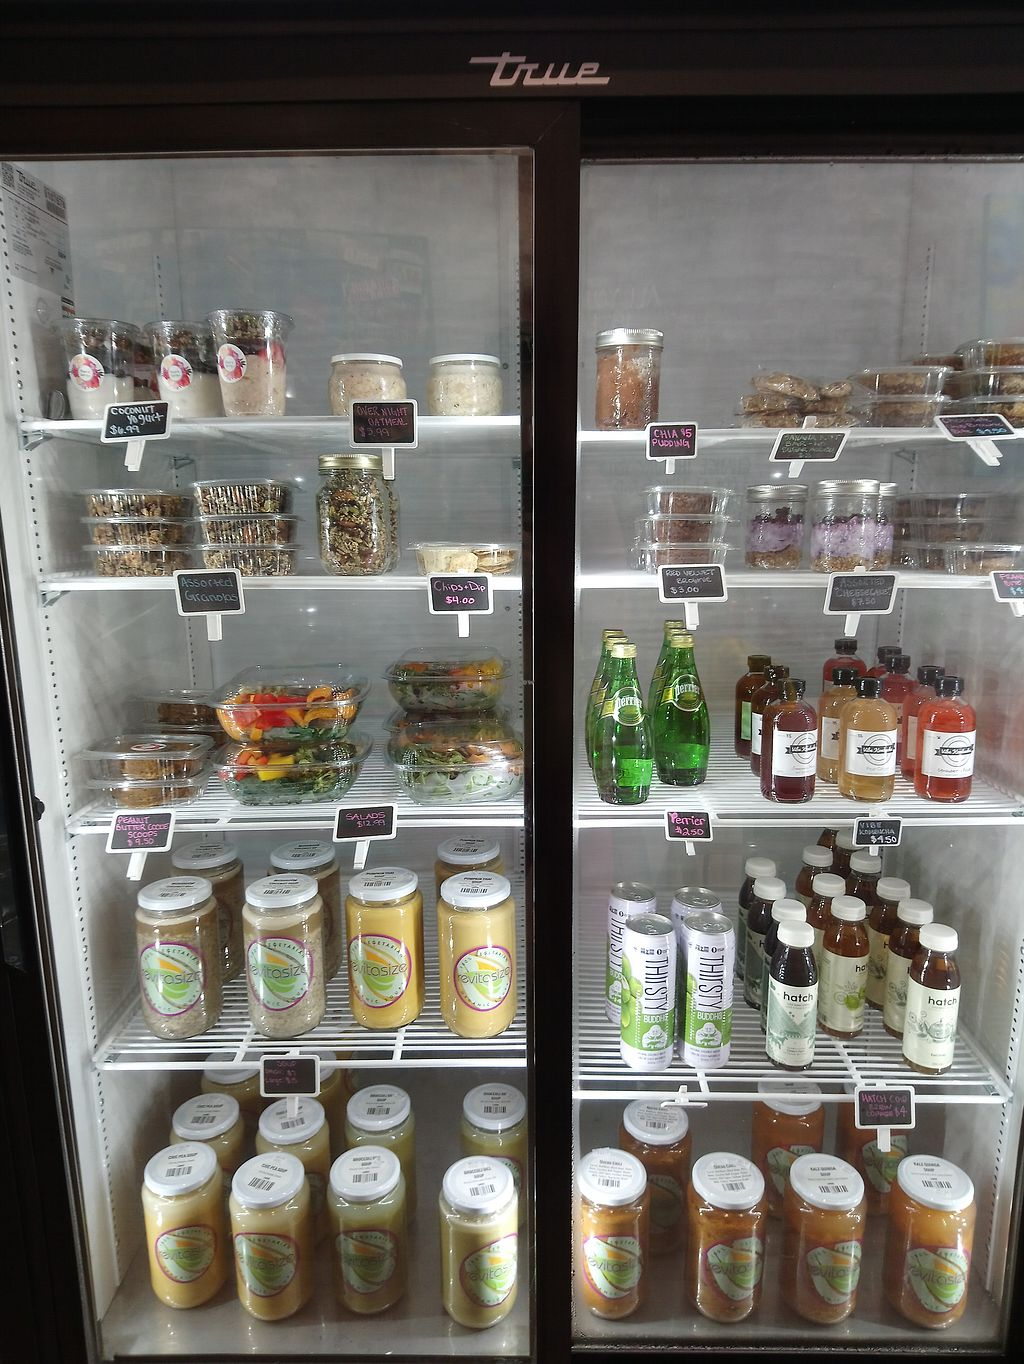 """Photo of Rosie's Eatery  by <a href=""""/members/profile/Vegan%20GiGi"""">Vegan GiGi</a> <br/>Ready to go items from the fridge at Rosie's Eatery <br/> July 29, 2017  - <a href='/contact/abuse/image/92240/286011'>Report</a>"""